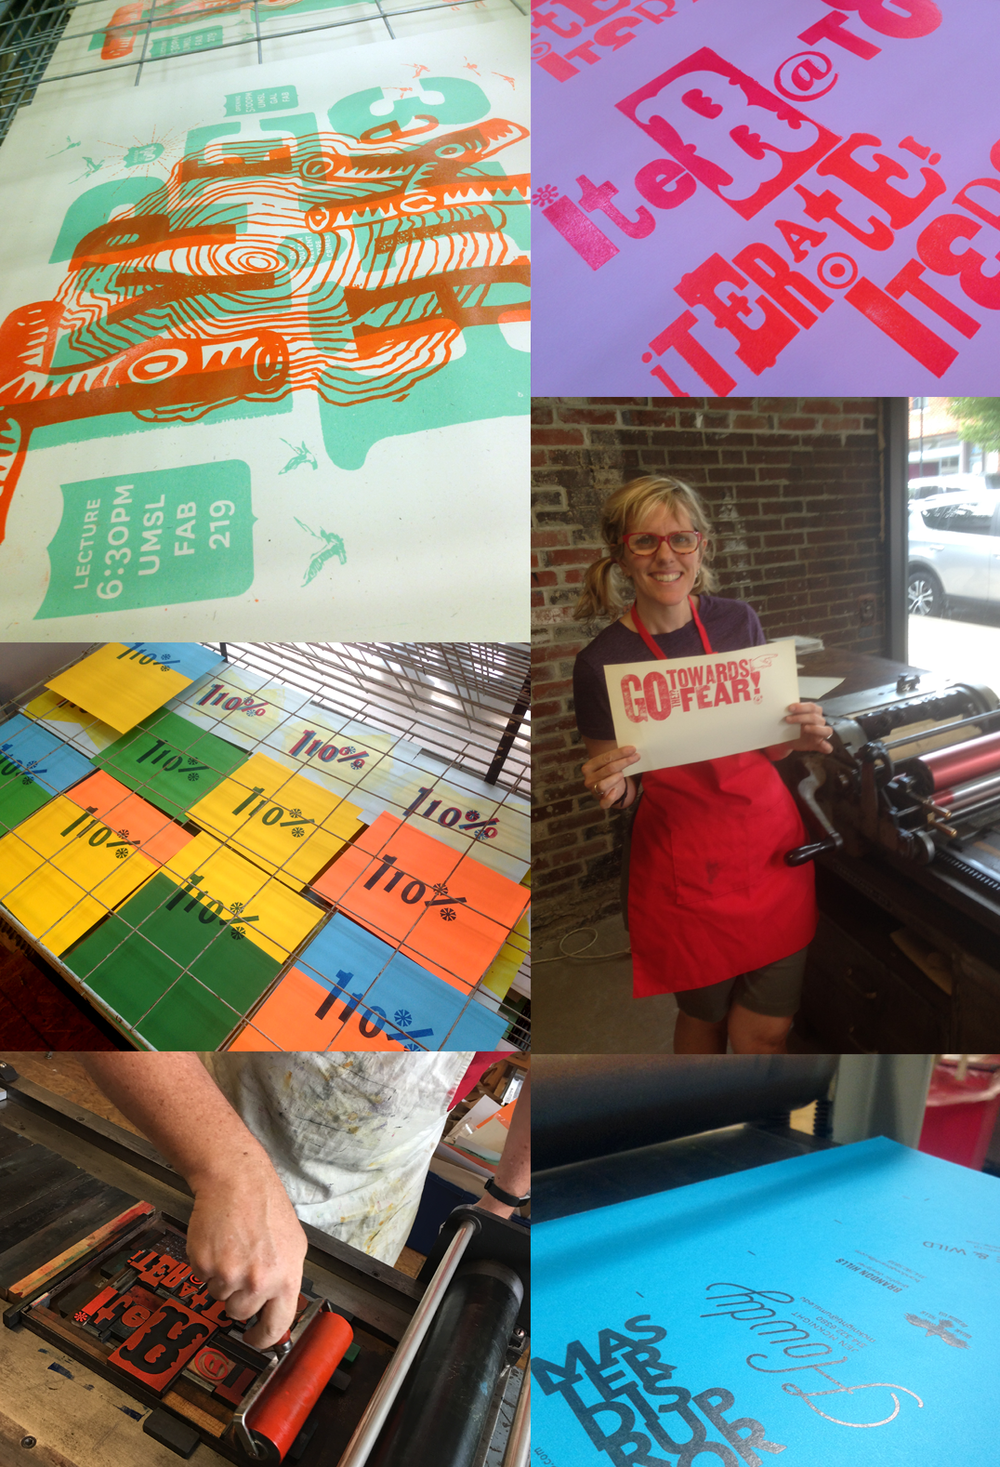 You can probably tell we're in to letterpress and look forward to getting our own up and running soon. Meantime, we love making cool stuff at  Central Print .